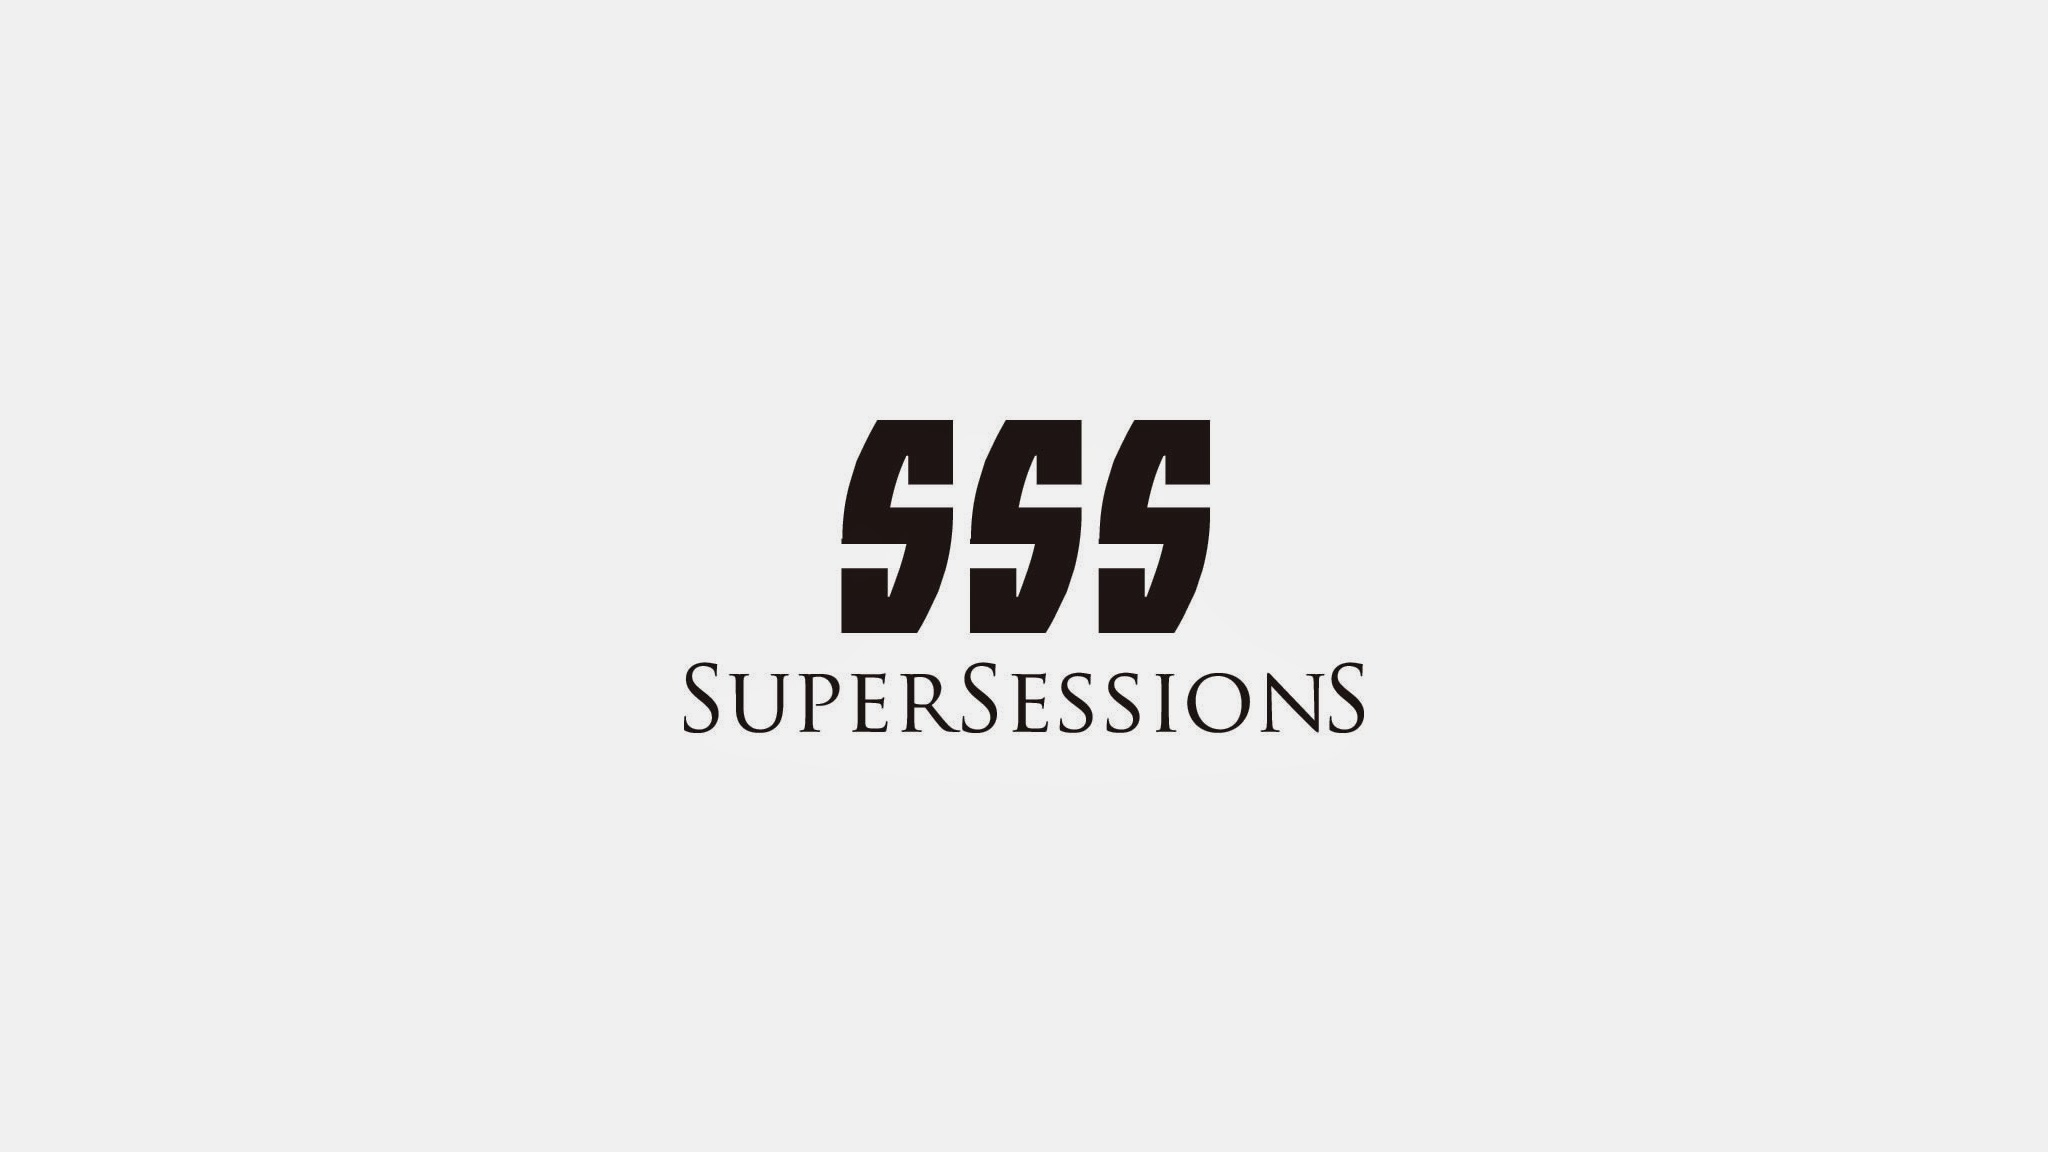 SUPERSESSIONS